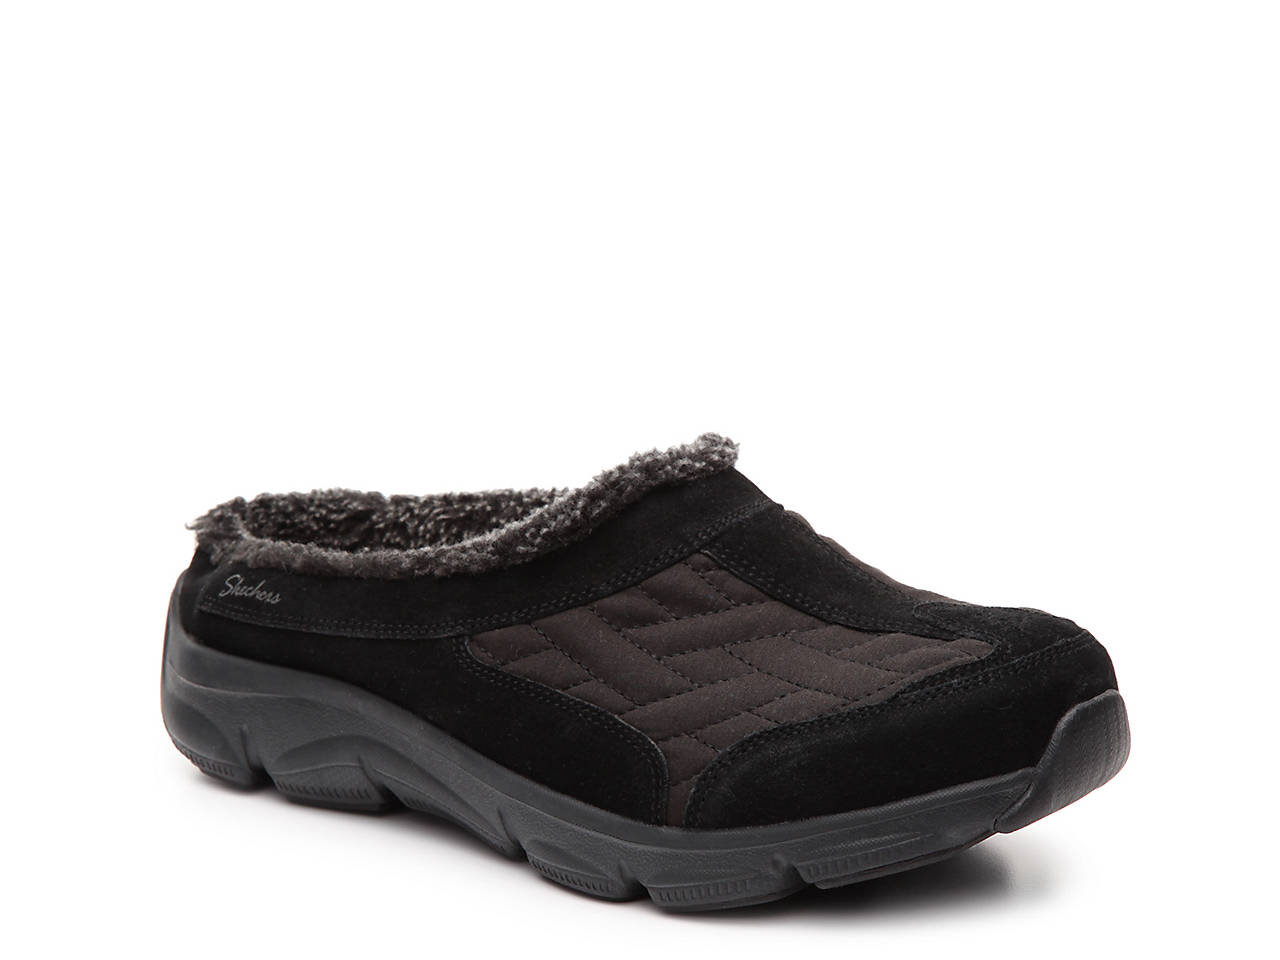 709c91237d94 Skechers Relaxed Fit Comfy Living Chillax Clog Women s Shoes